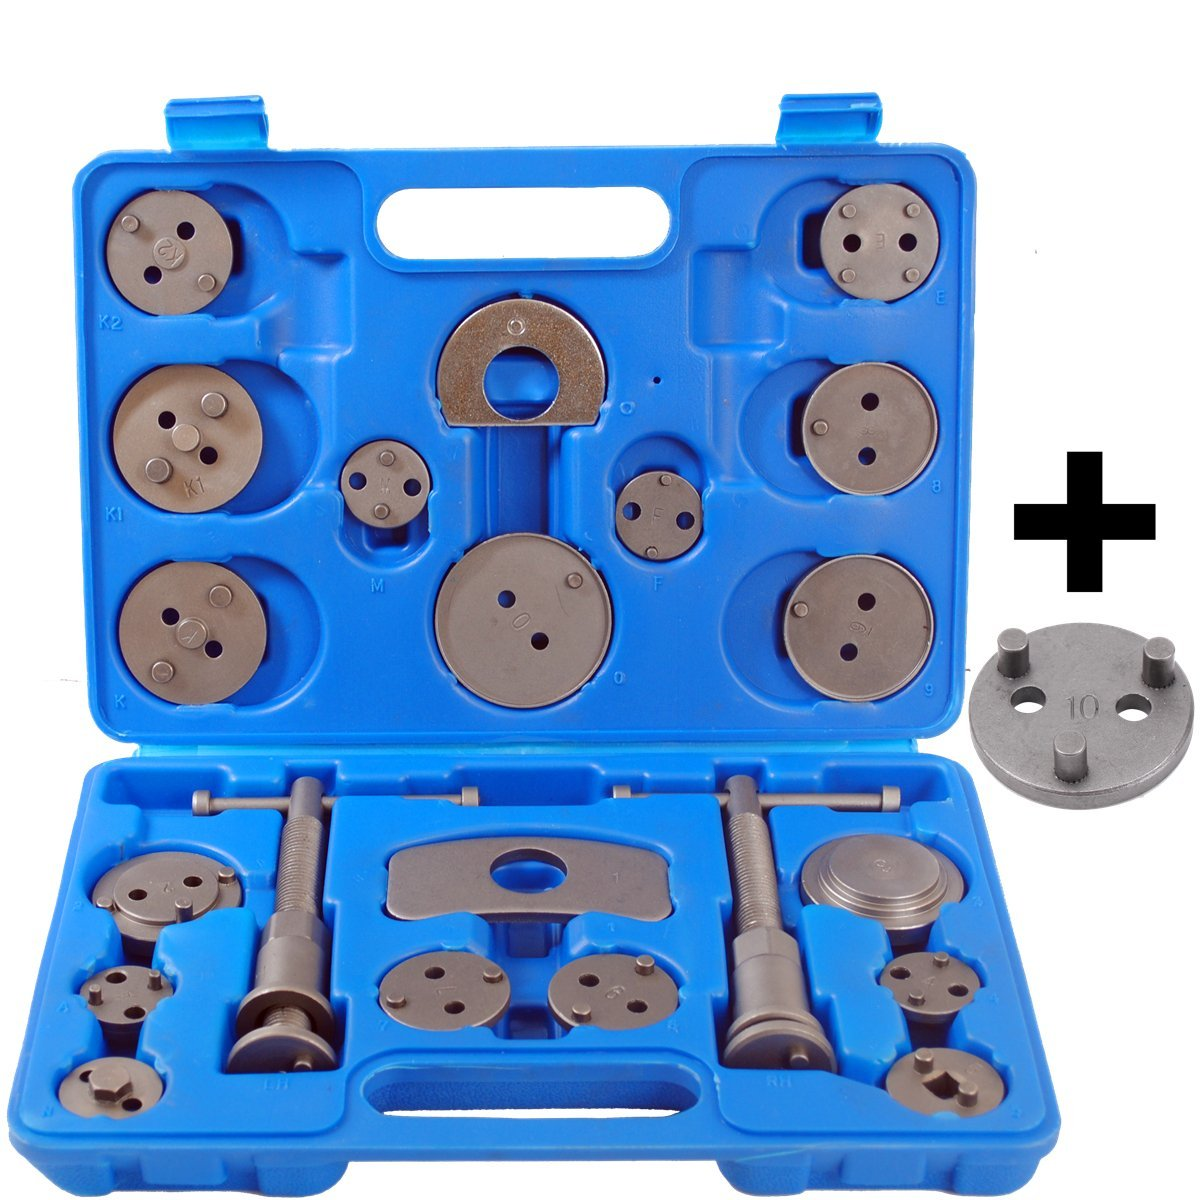 22 Pieces Universal Car Disc Brake Caliper Wind Back Brake Piston Compressor Tool Kit For Most Automobiles Garage Repair Tools goxawee 13pcs universal car disc brake caliper wind back brake piston compressor tool for car automobiles garage repair tools